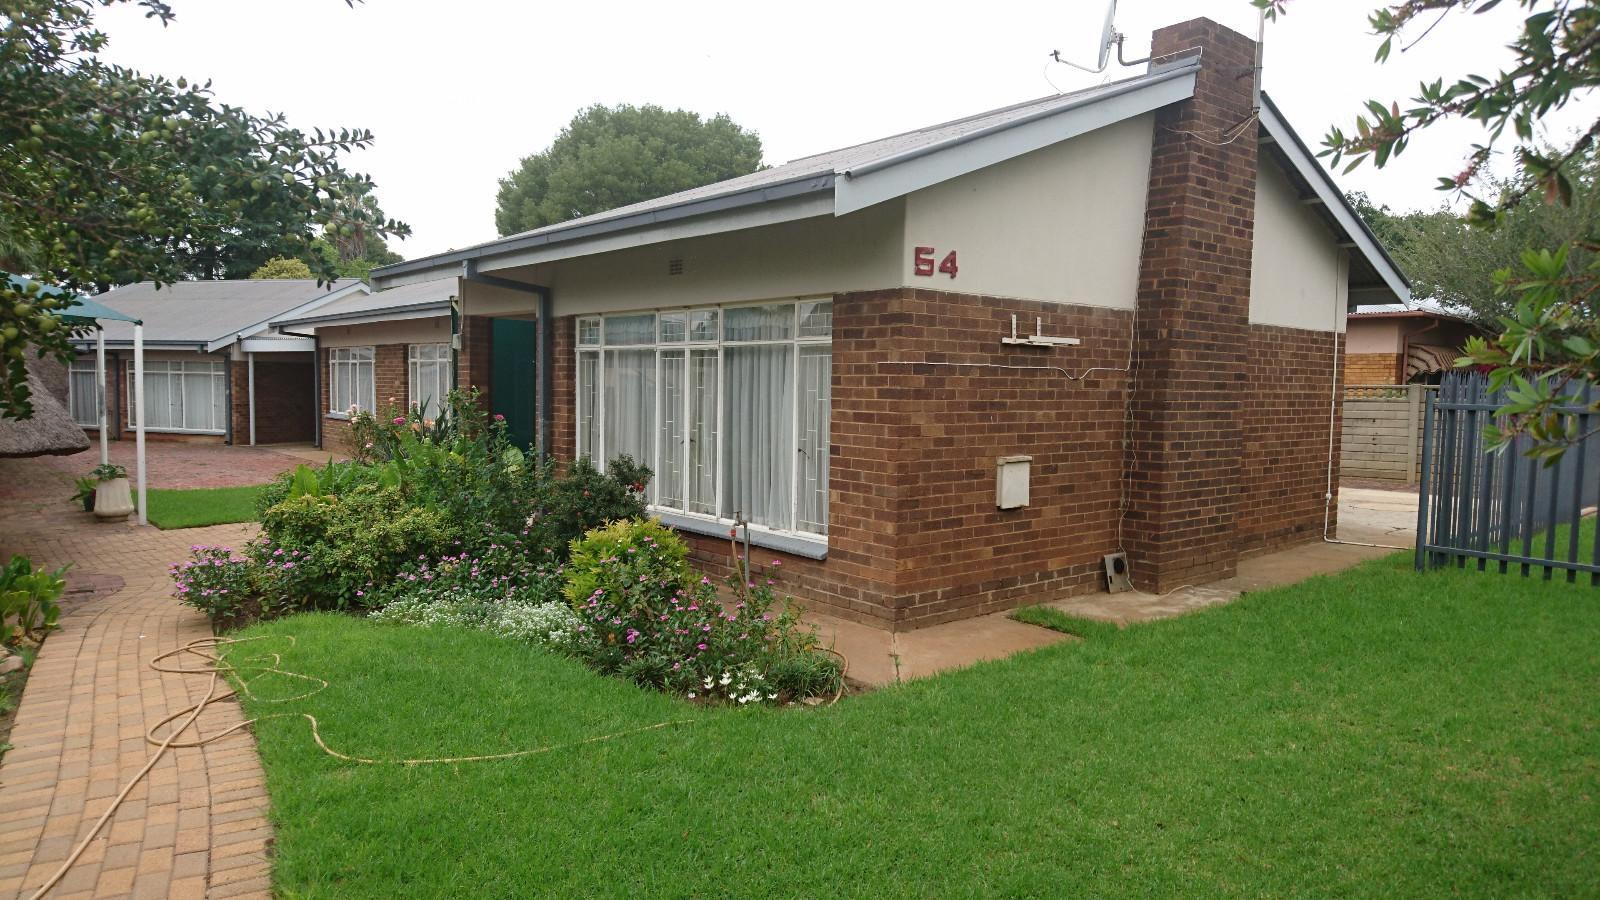 Potchefstroom Central property for sale. Ref No: 13308491. Picture no 1